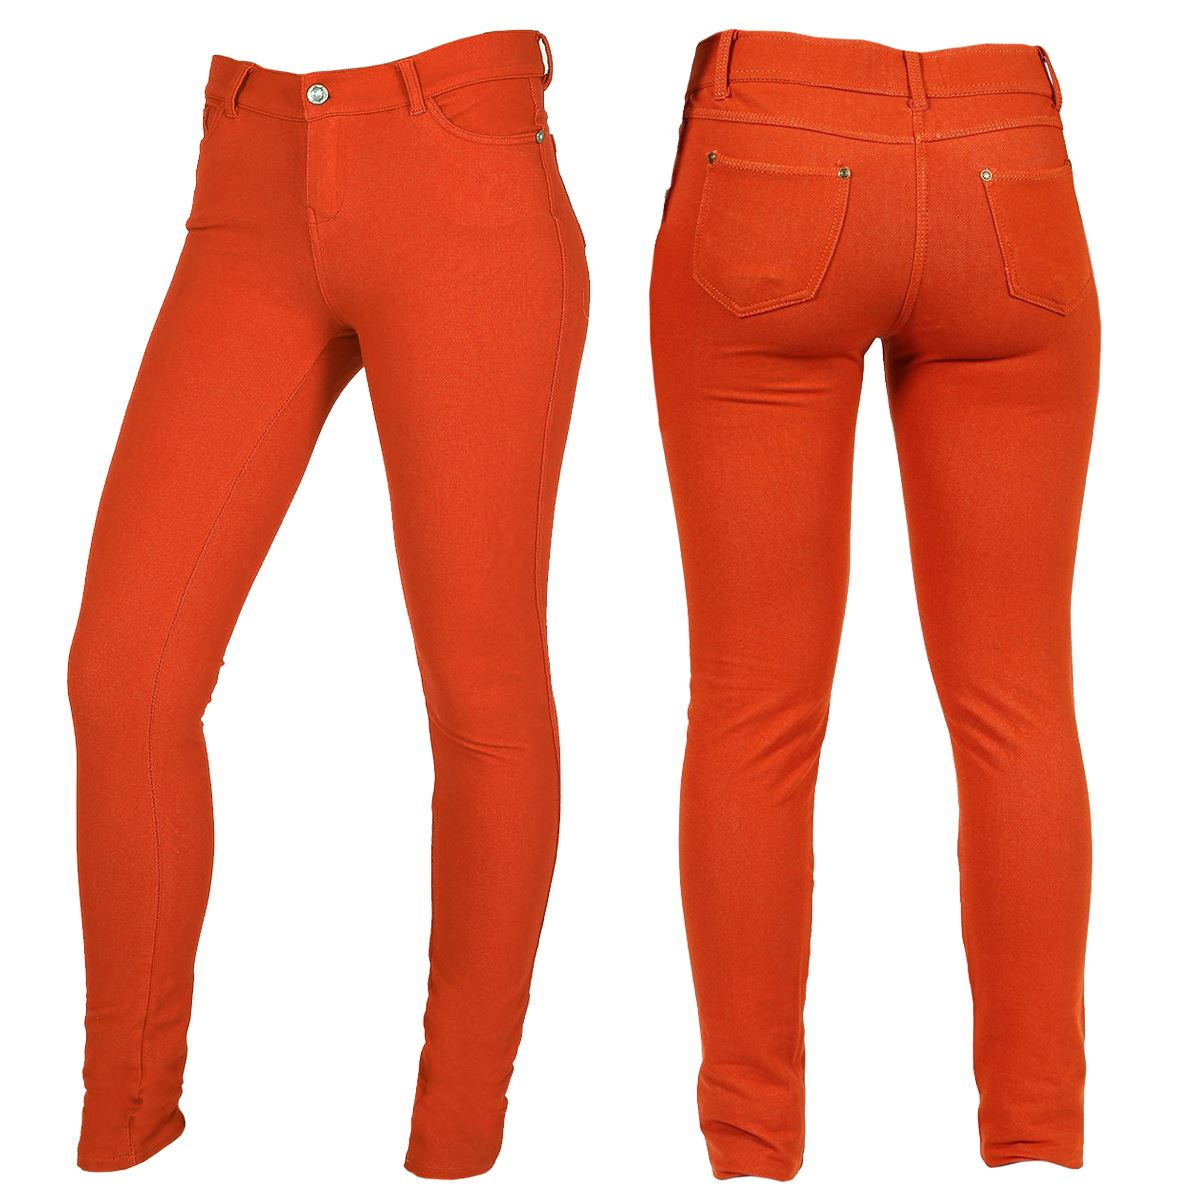 Womens-Ladies-NEW-Skinny-Stretch-Jeggings-Pents-Girls- - Womens Ladies NEW Skinny Stretch Jeggings Pents Girls Jeans